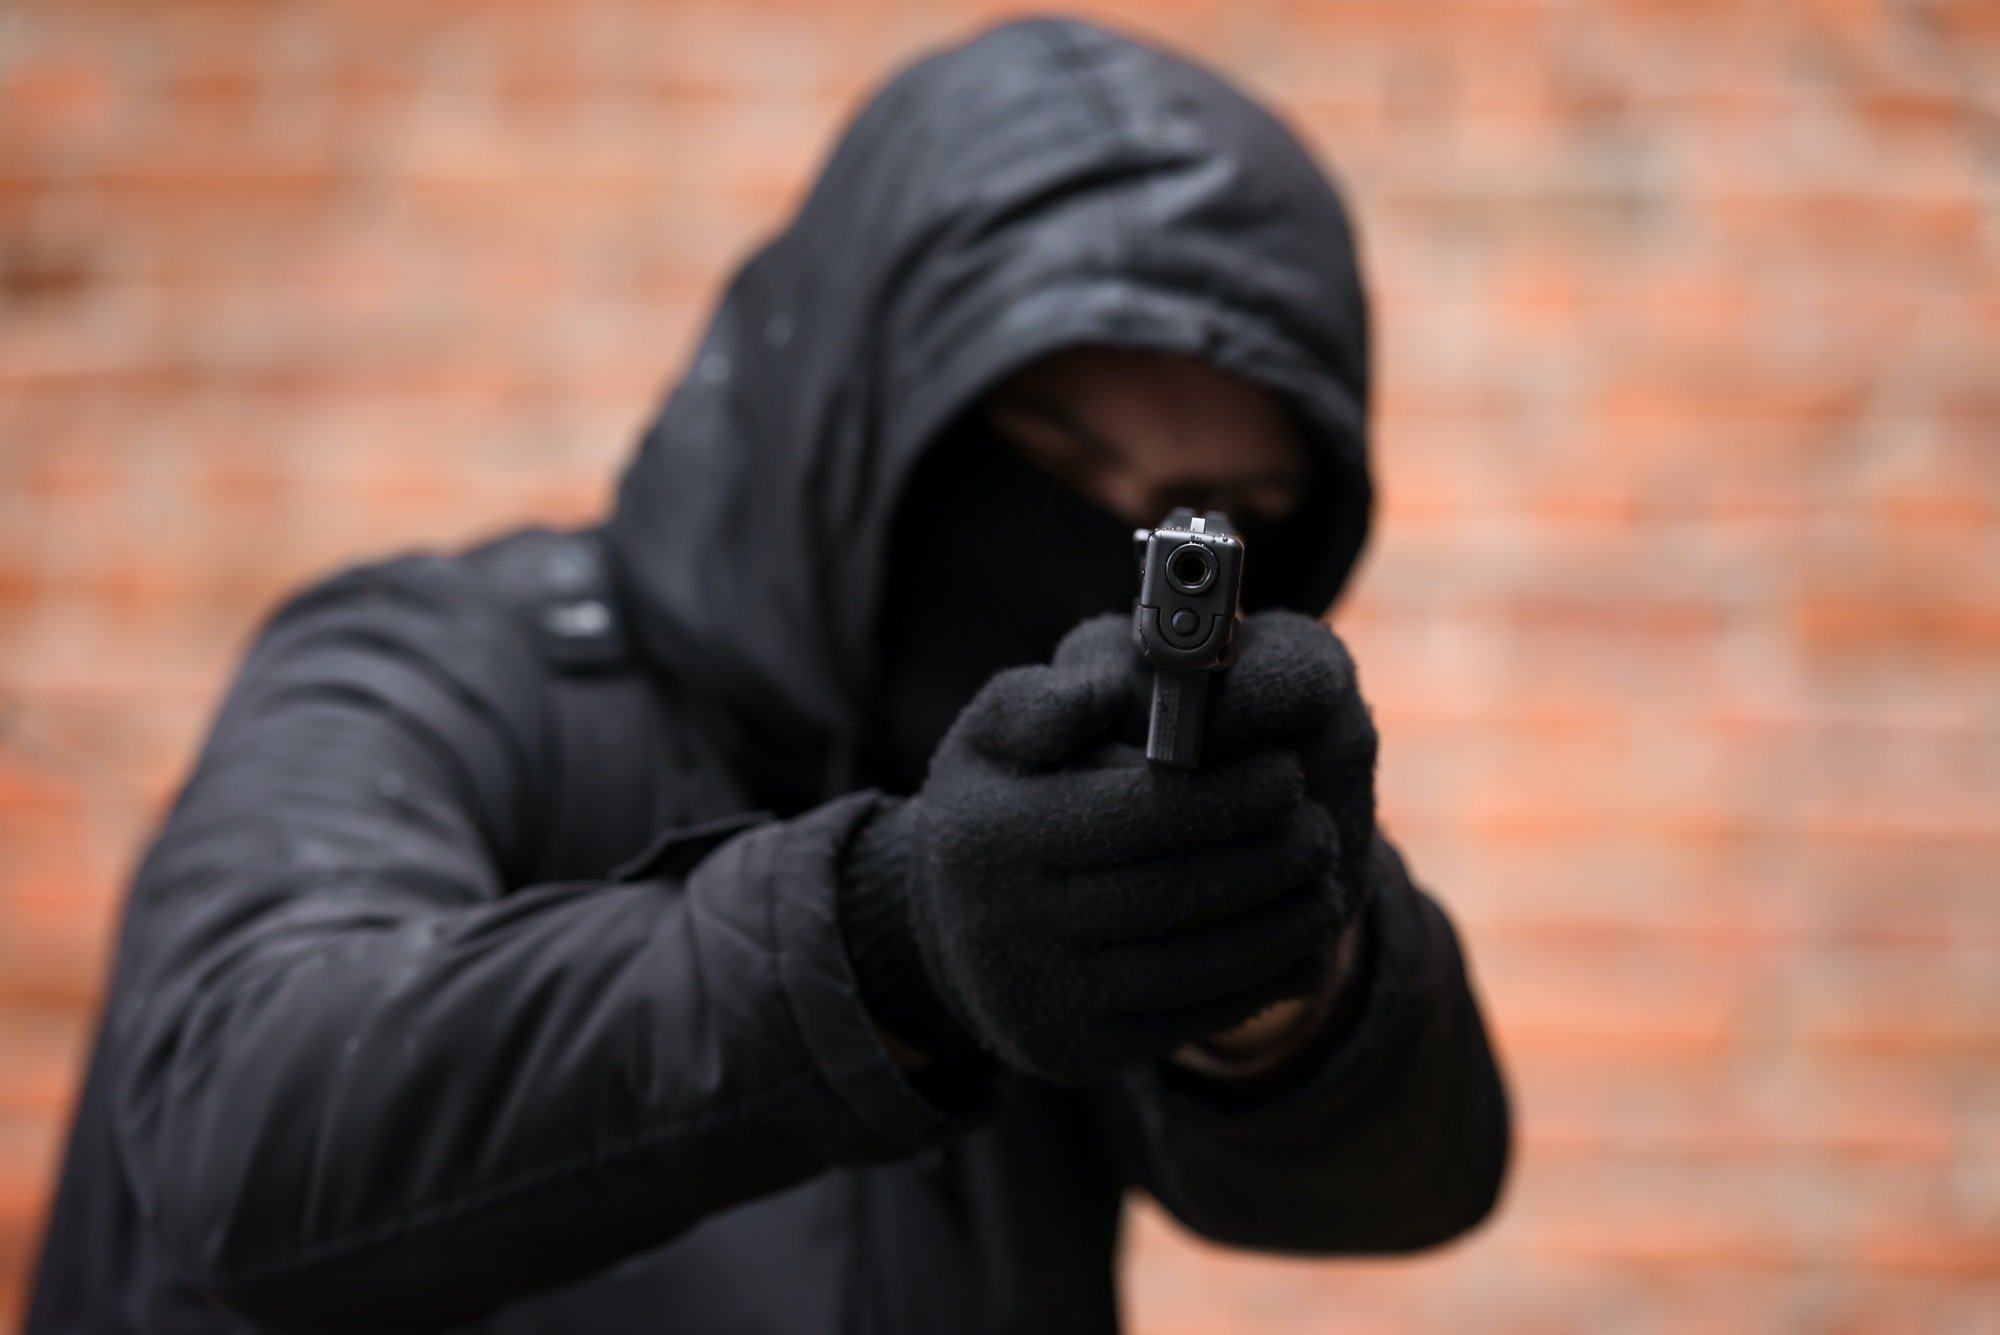 Man in black mask with handgun